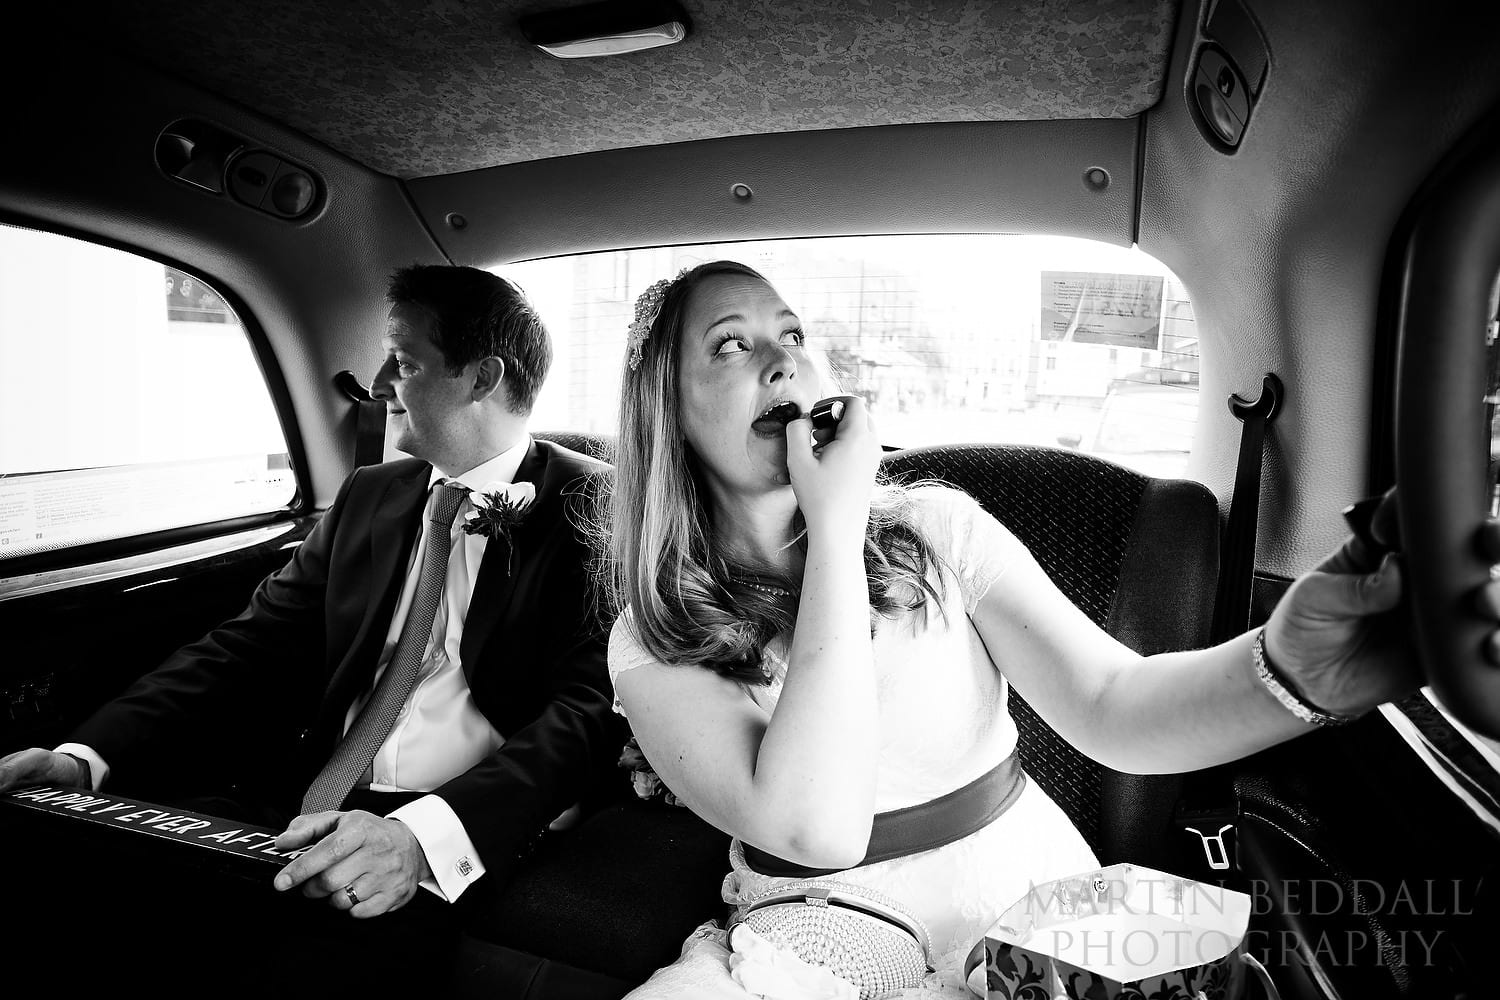 Wedding Photography in 2014 reportage